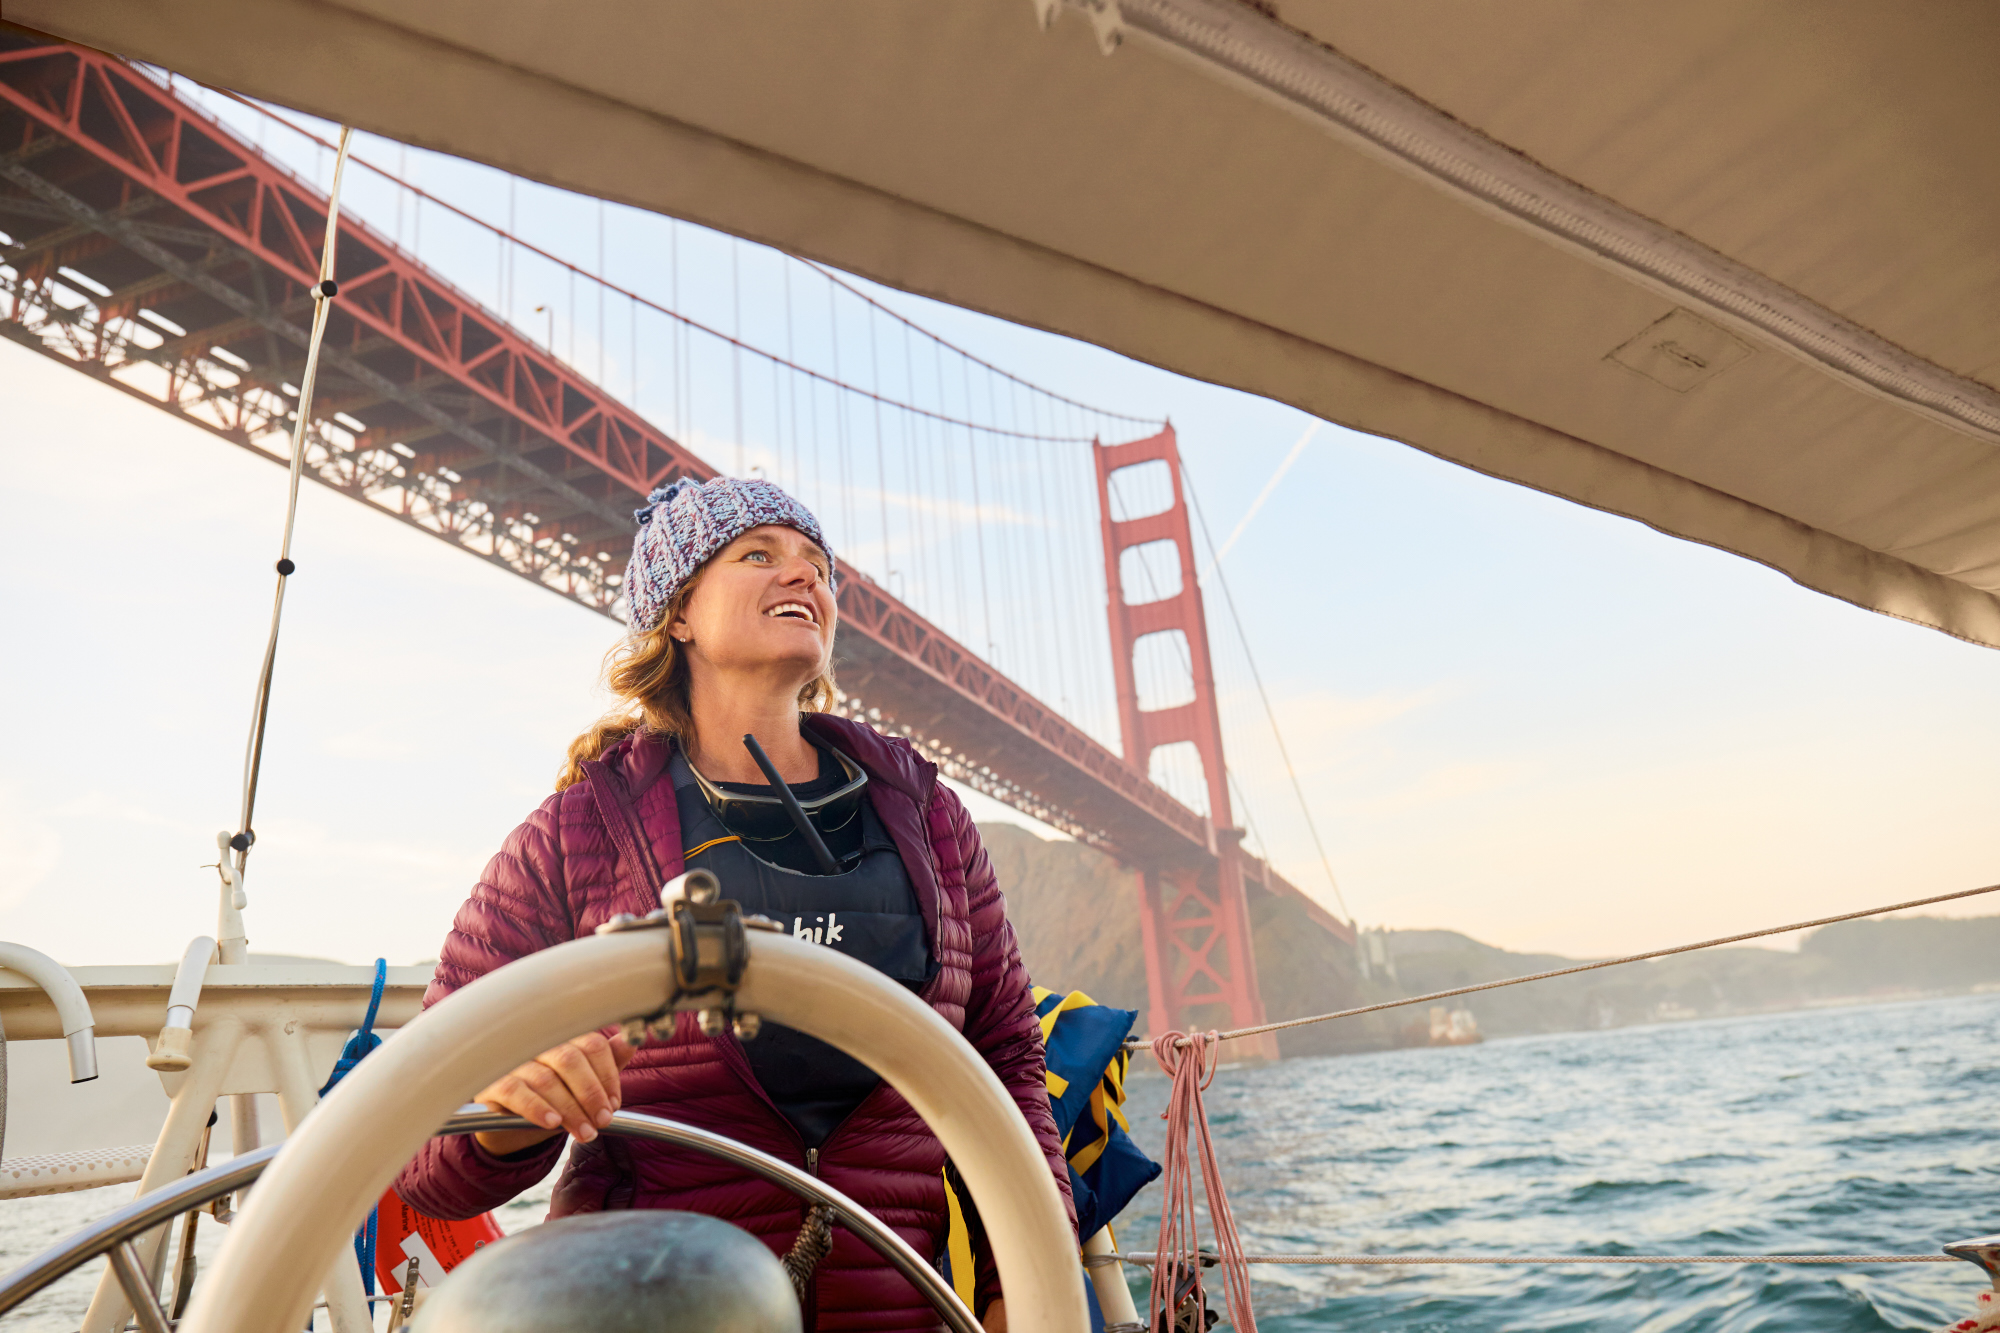 SF_Heather_SF44_SustainableSailing_TwilightSail_18829_RT.jpg